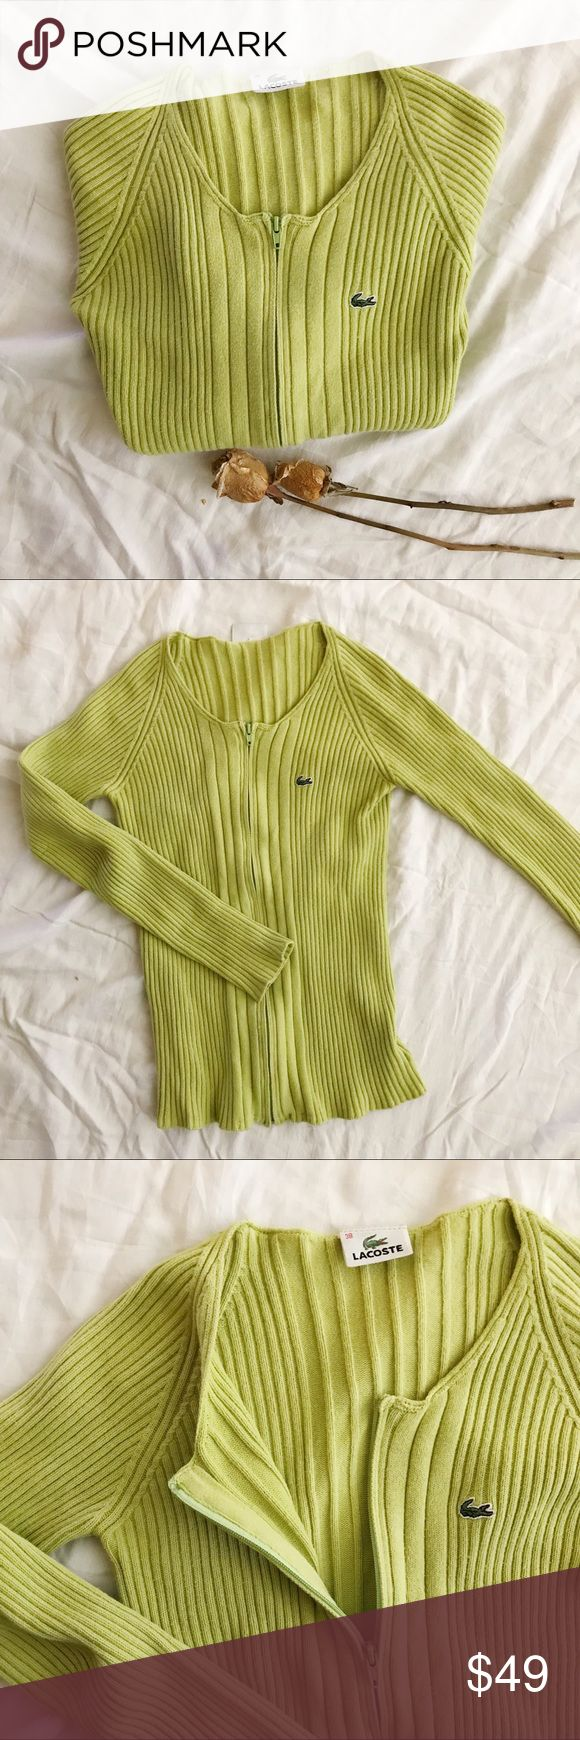 🍦Lacoste Green Knit Crewneck Cotton Sweater One of a kind cotton crew neck sweater from Lacoste. stretchy knit that is fitted when worn. Zipper in front for easy in and out. Size 38 = small, US 2-4. No trades! Authentic item purchased from the Lacoste store.   Items with 🍦 can only be bundled with other items that have 🍦 in title. Lacoste Sweaters Cardigans